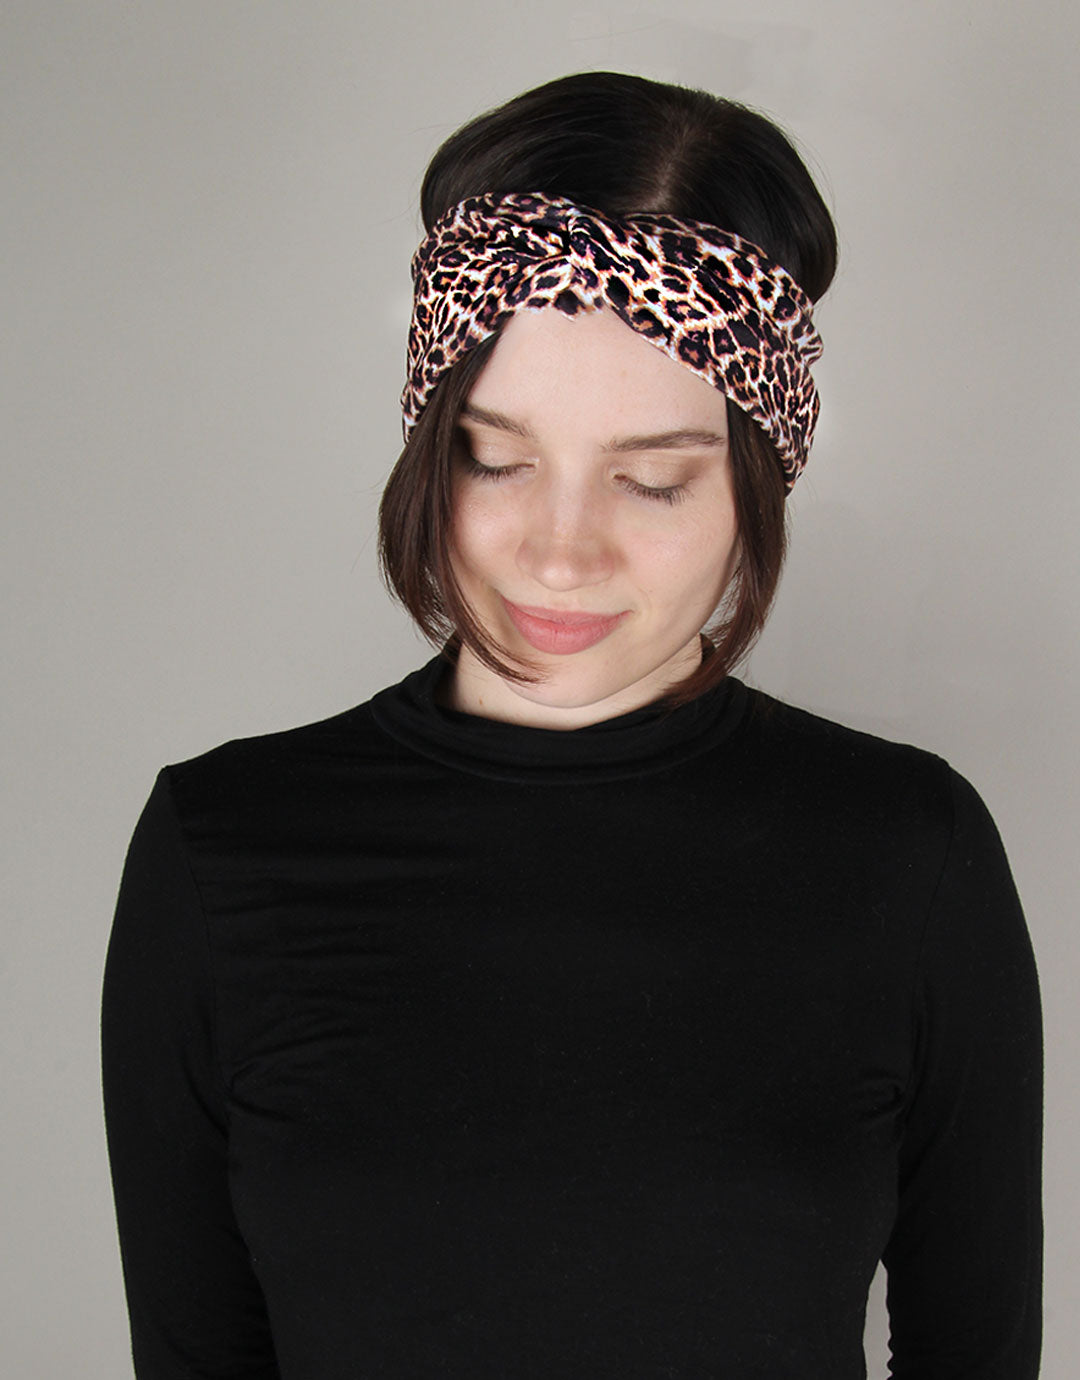 BANDED Women's Headwraps + Hair Accessories - Classic Leopard - Twist Headwrap